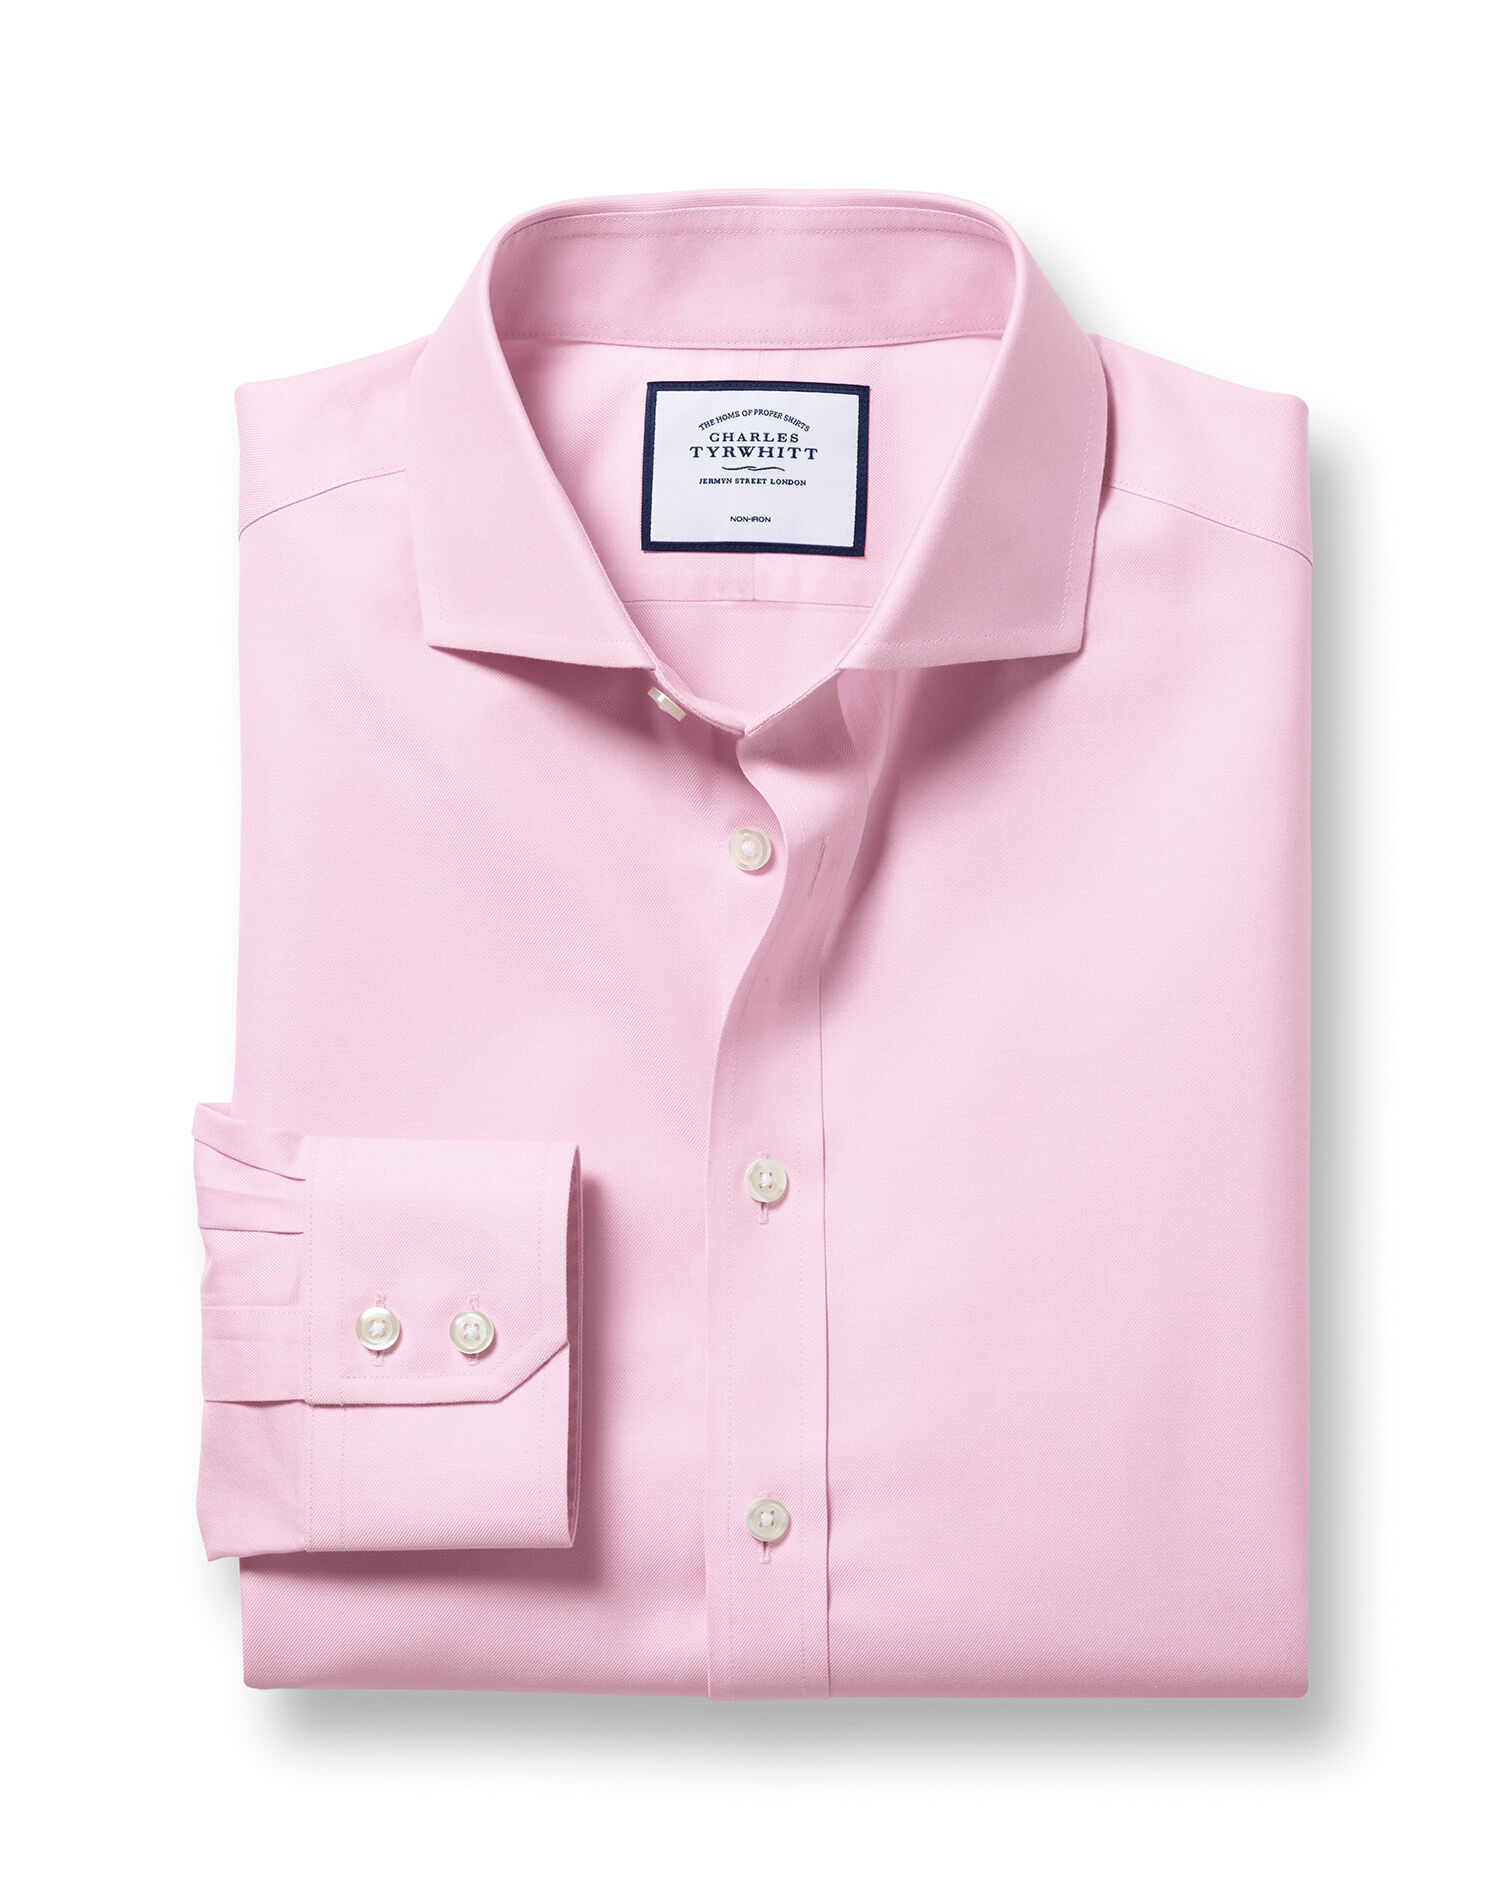 Slim Fit Cutaway Non-Iron Twill Pink Cotton Formal Shirt Double Cuff Size 16/38 by Charles Tyrwhitt